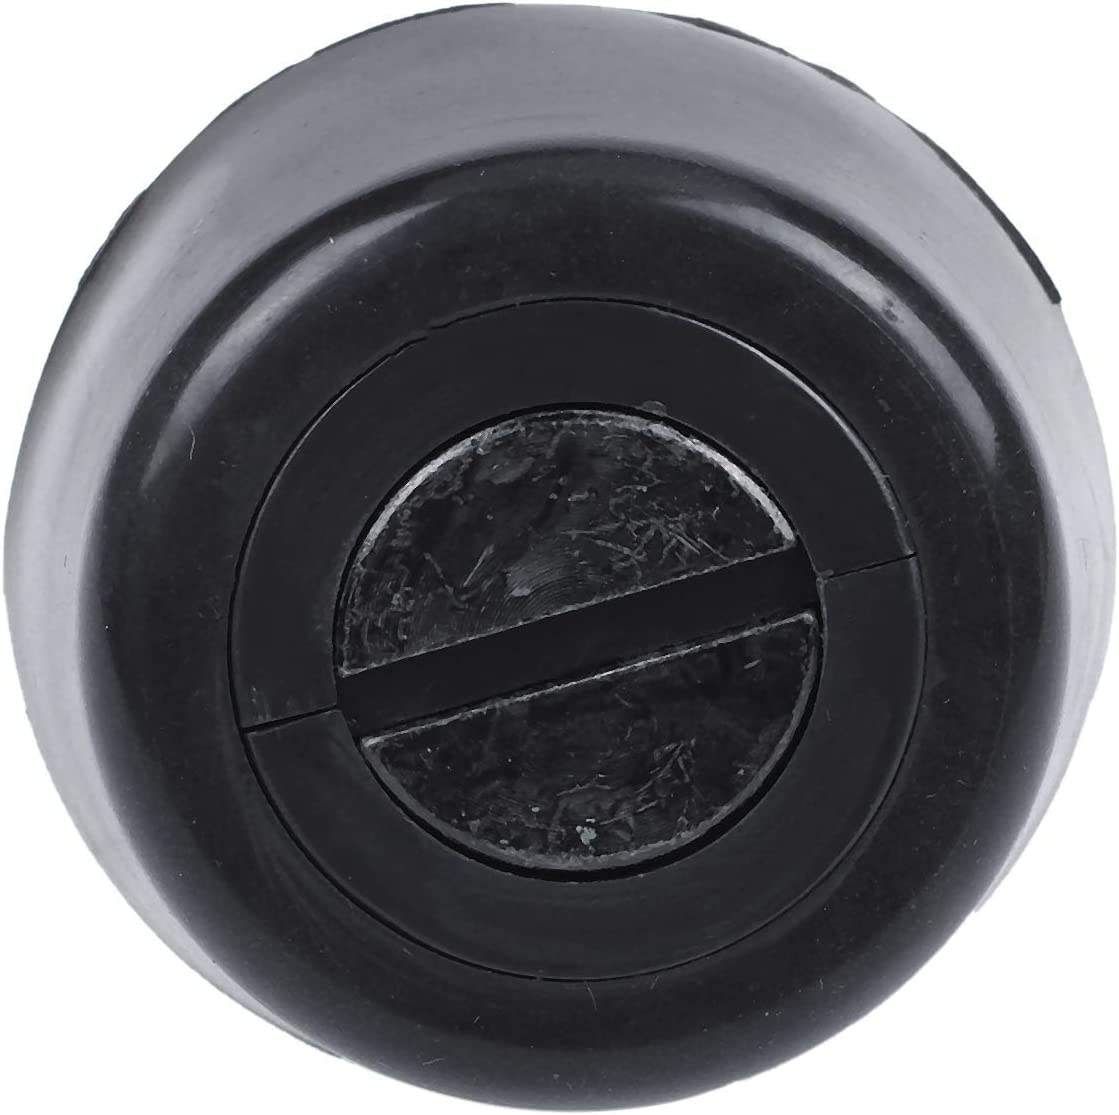 Andifany Car Rear Door Side Panel Check Magnet Door Stop Retainer for Mercedes Sprinter W906 for Crafter A9067400216